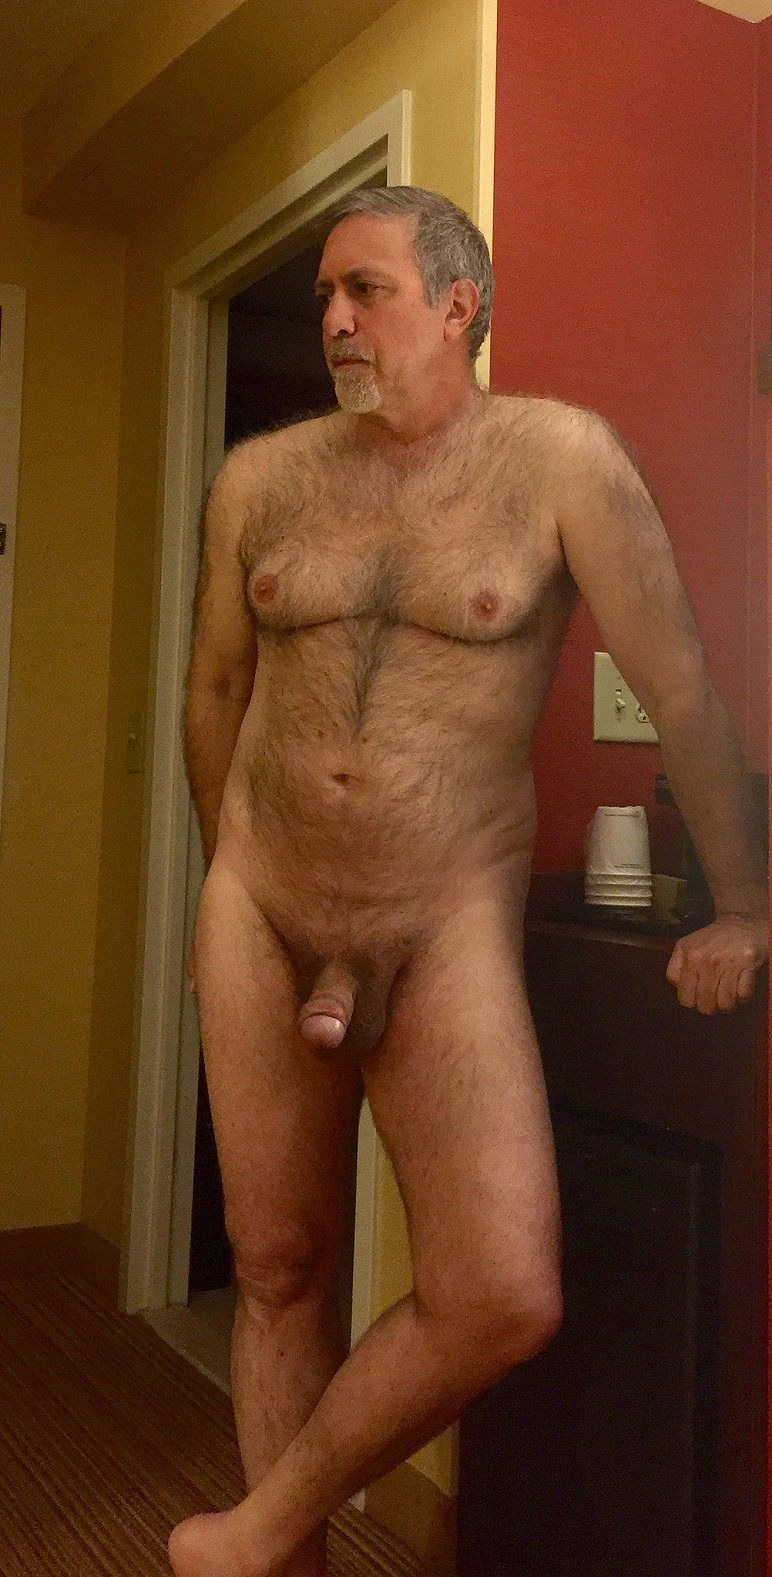 Male exhibitionist